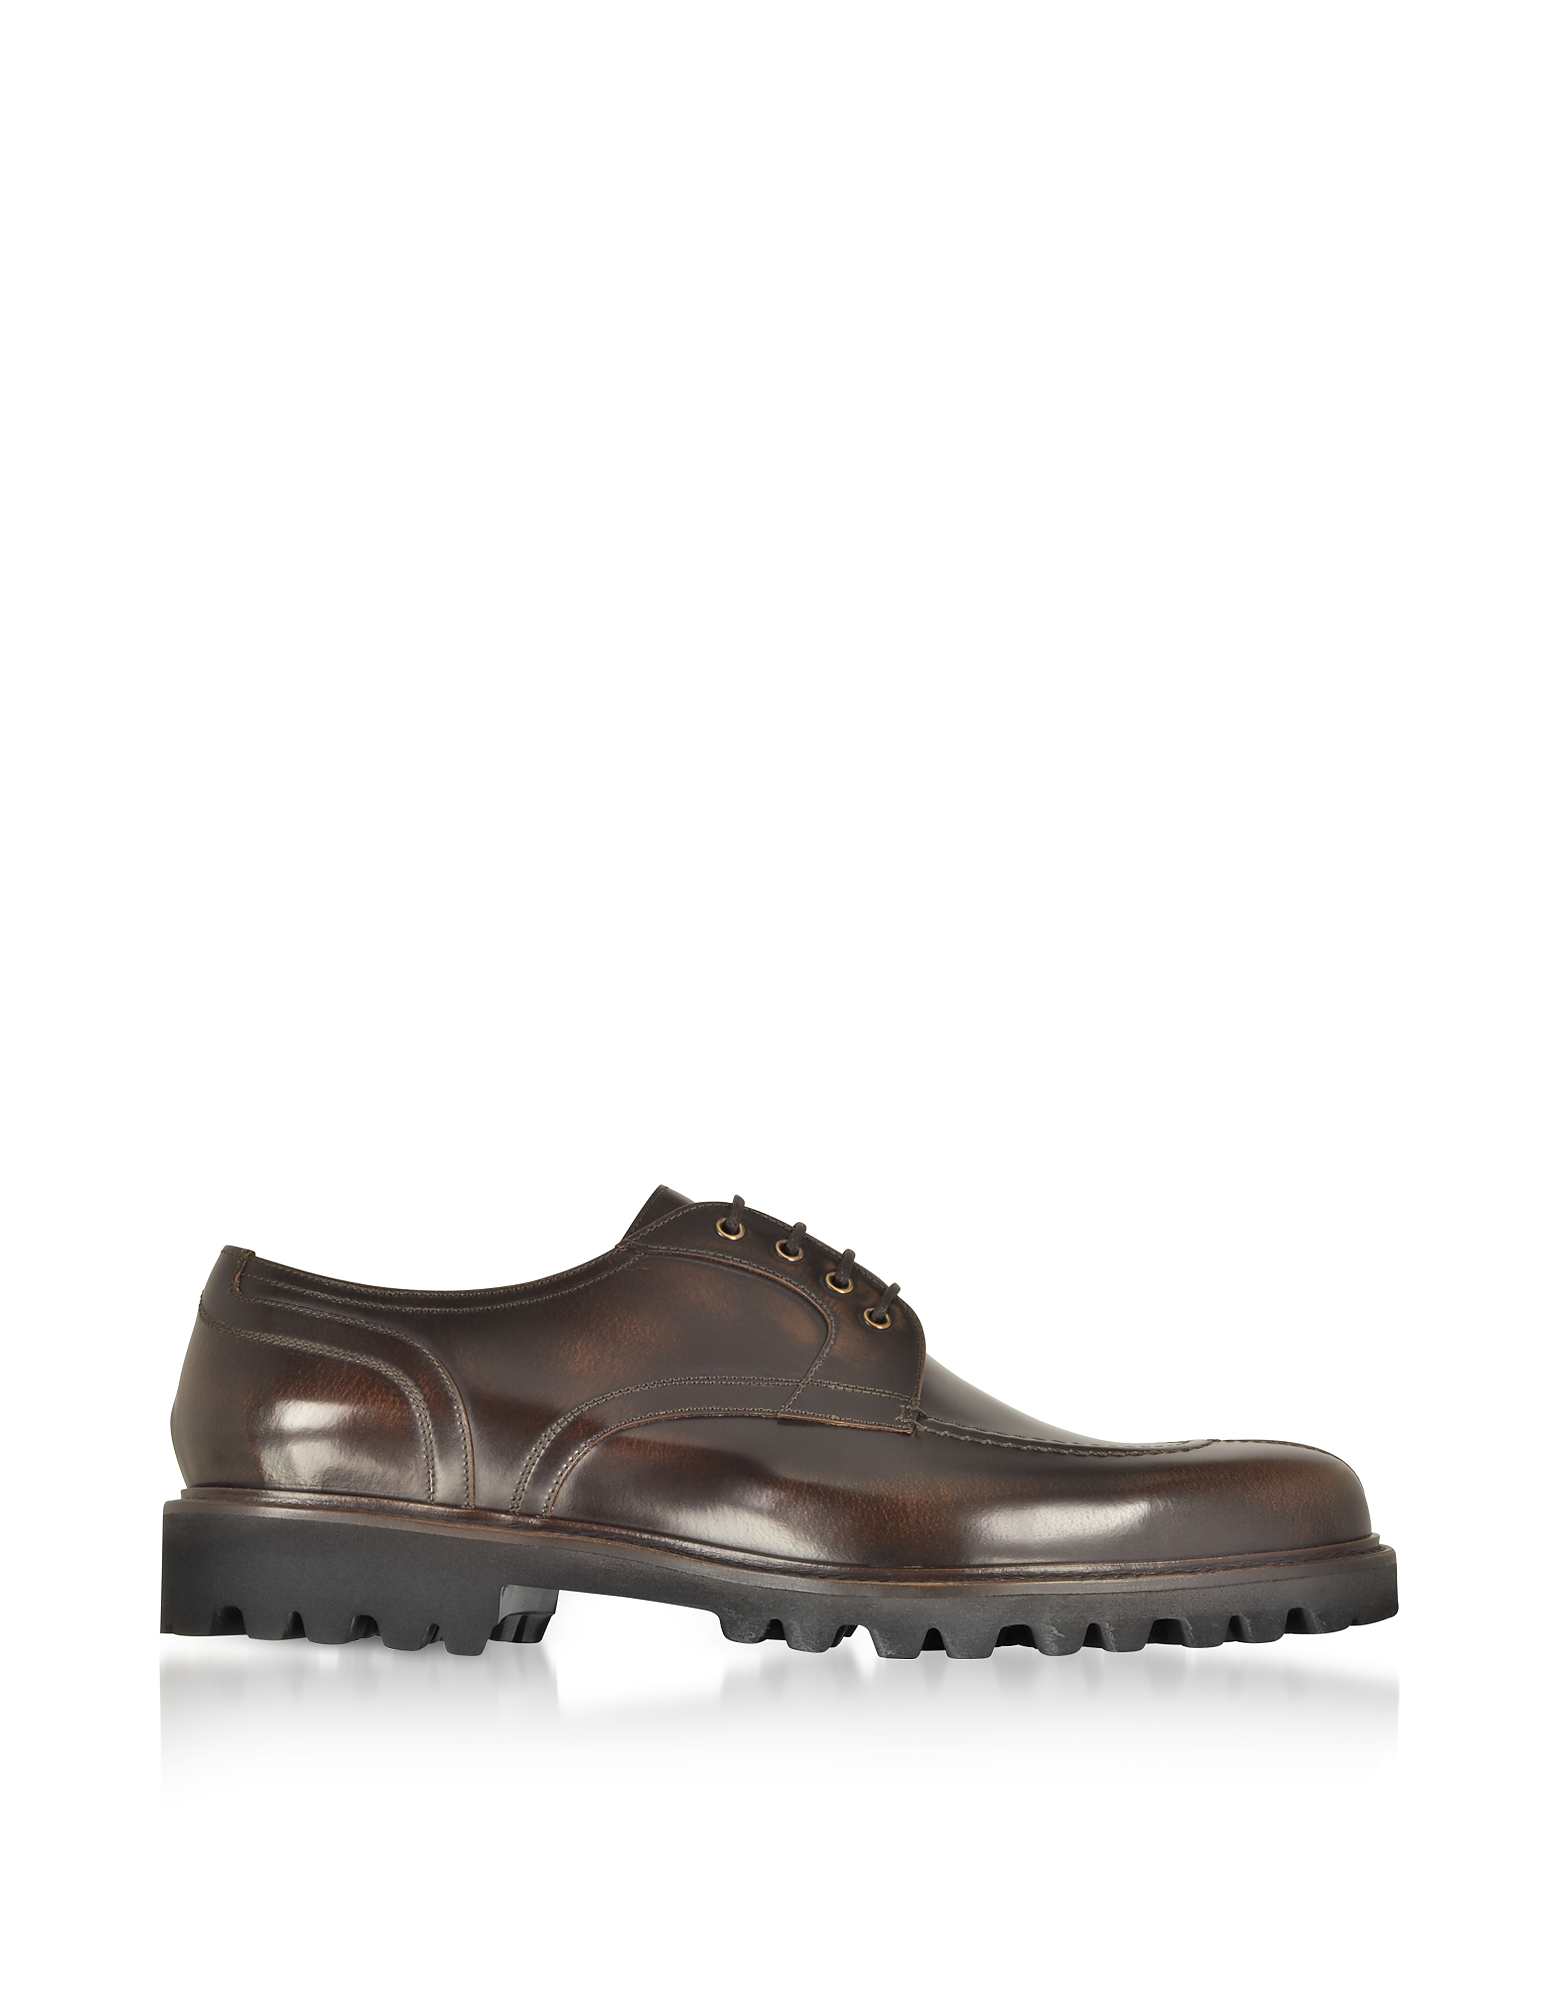 Fratelli Borgioli Designer Shoes, Walnut Leather Casual Derby Extralight Sole